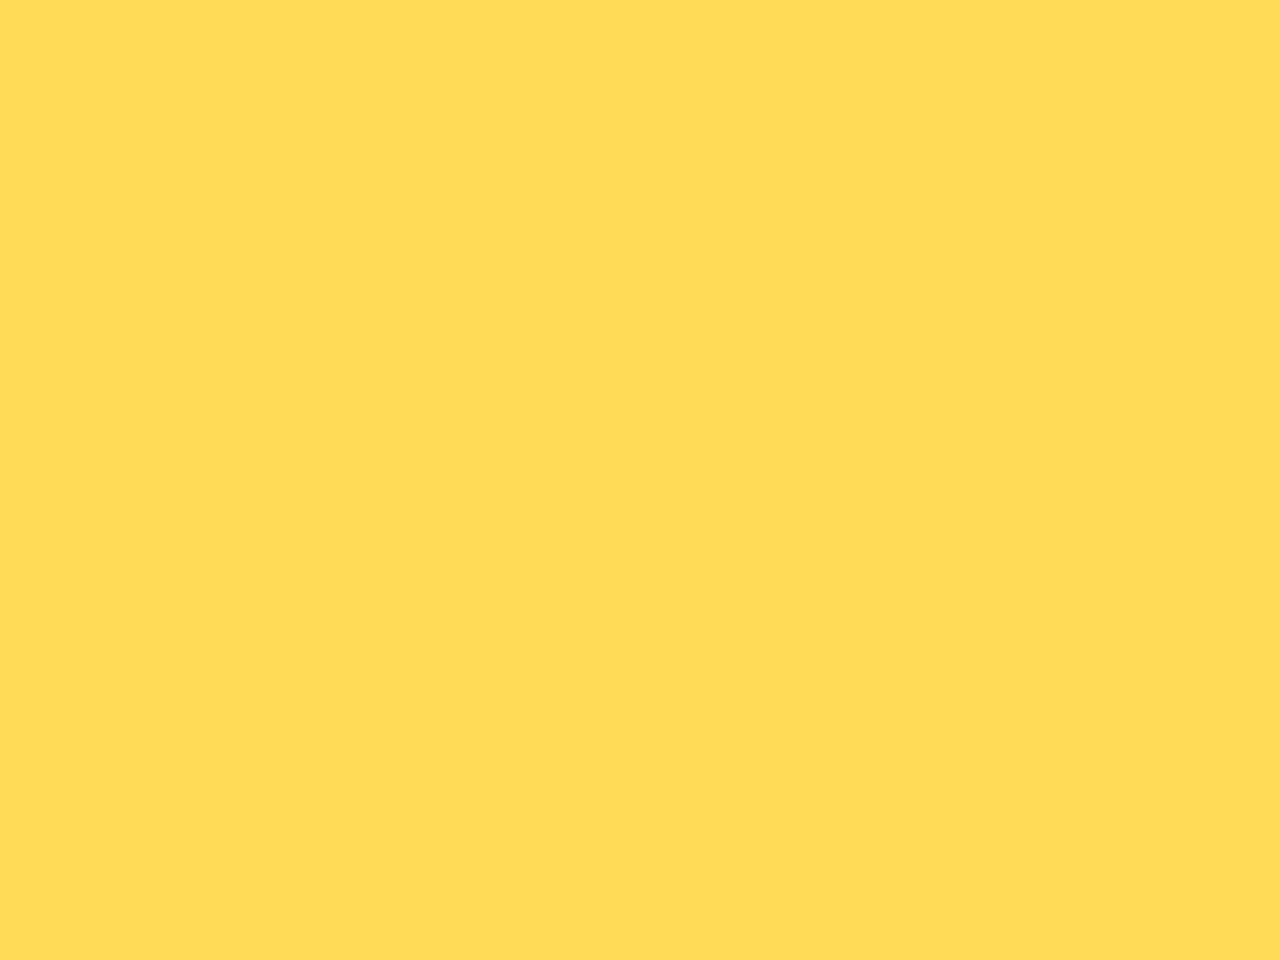 1280x960 Mustard Solid Color Background